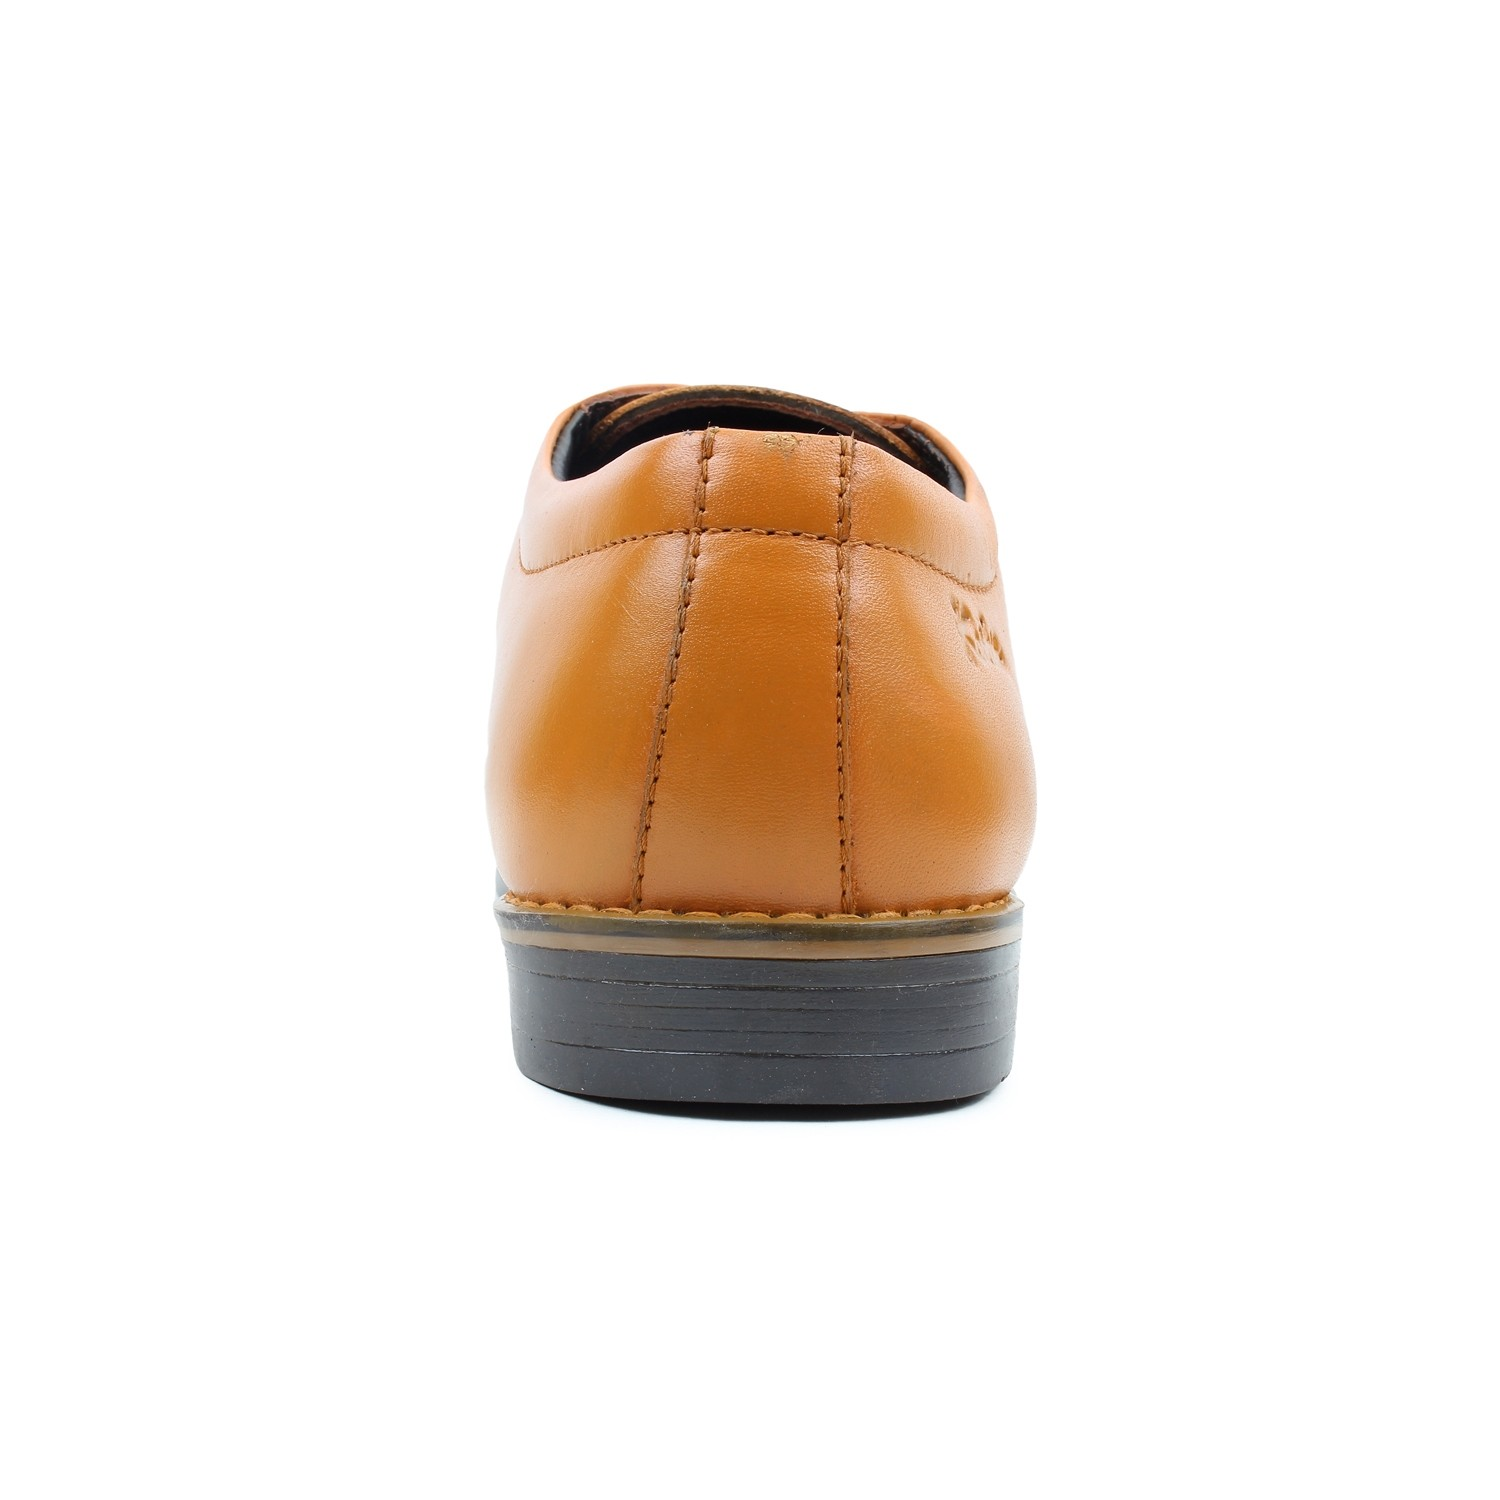 Leather-Shoes-Tan